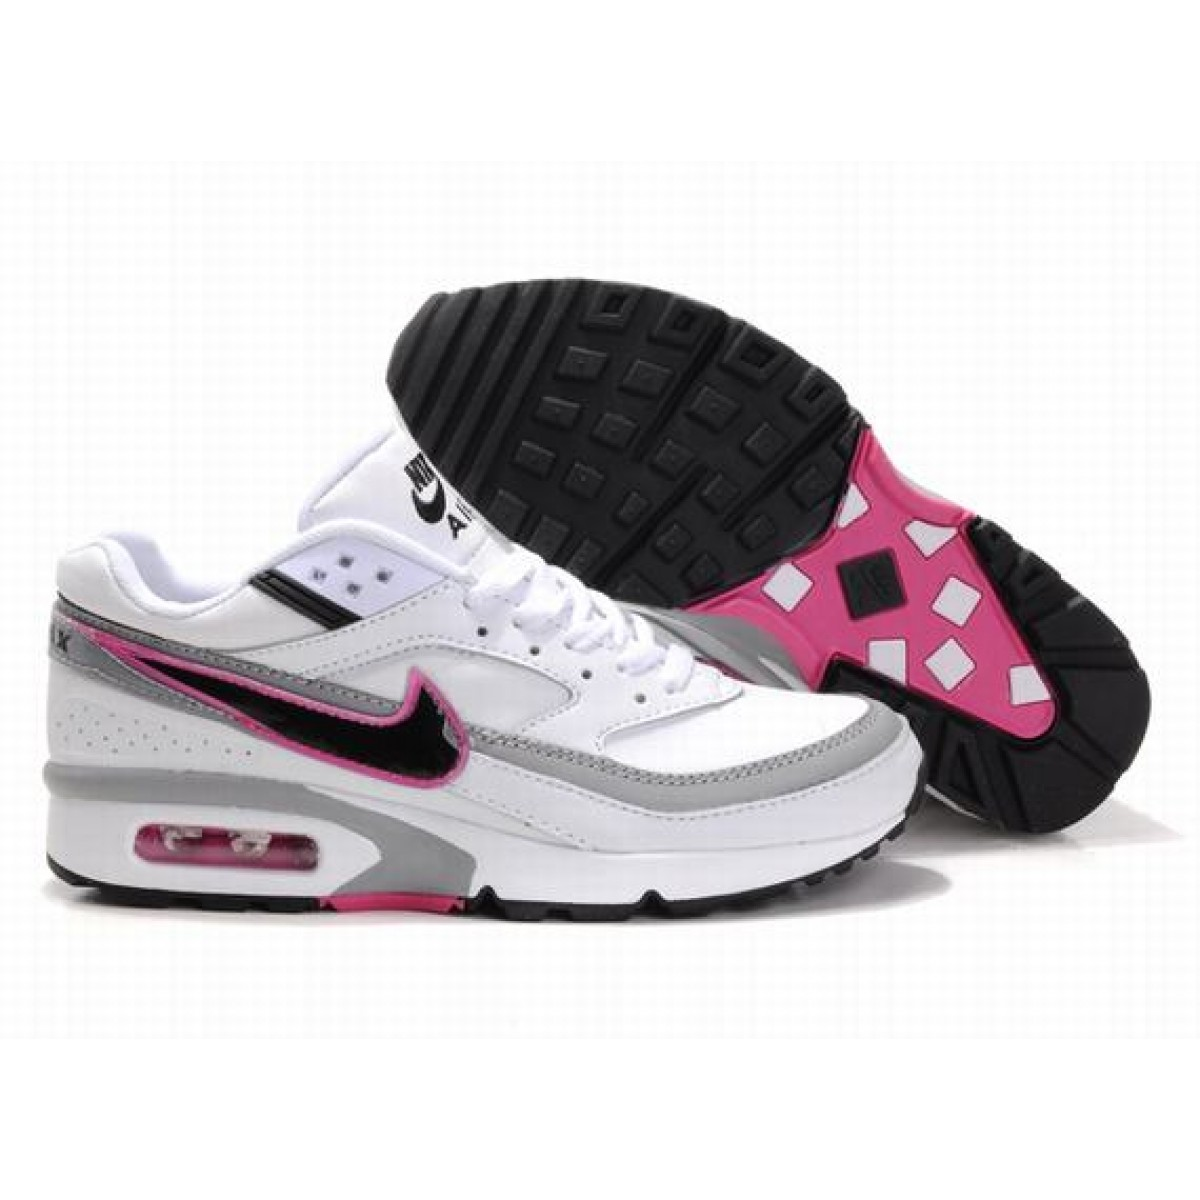 basket air max femme soldes luxe,nike air max bw femme soldes